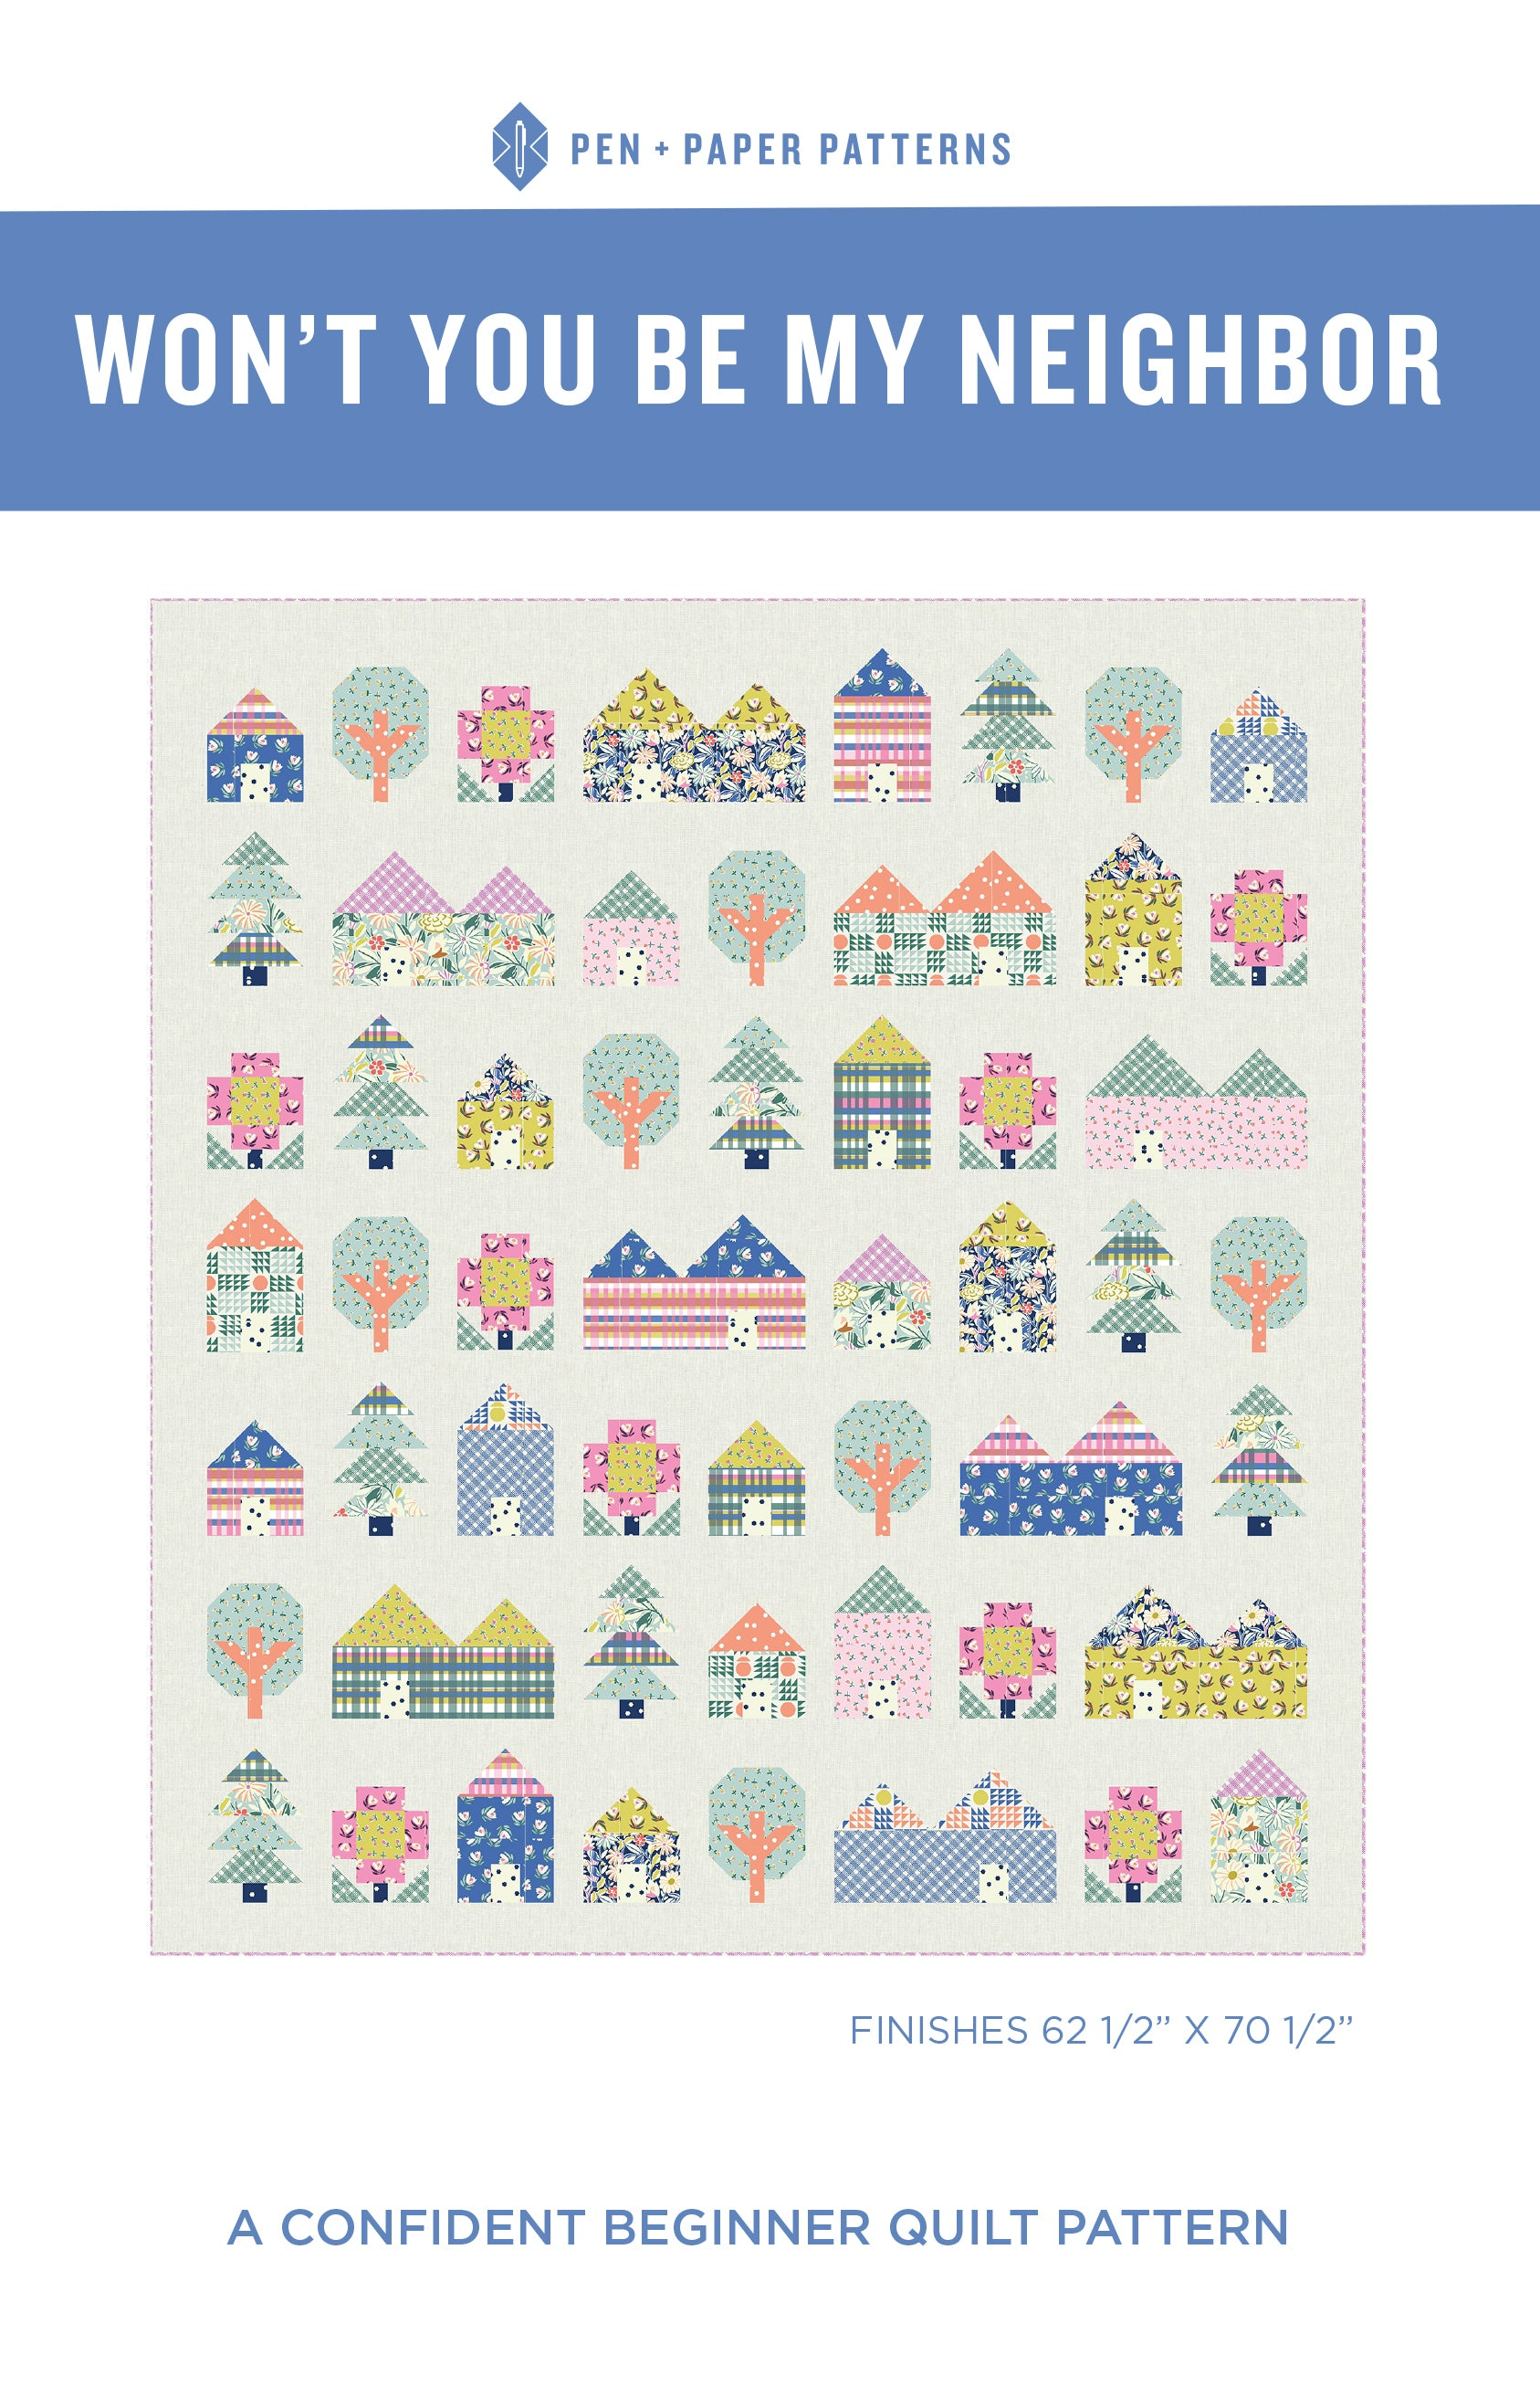 Won't You Be My Neighbor Quilt Pattern by Pen and Paper Patterns